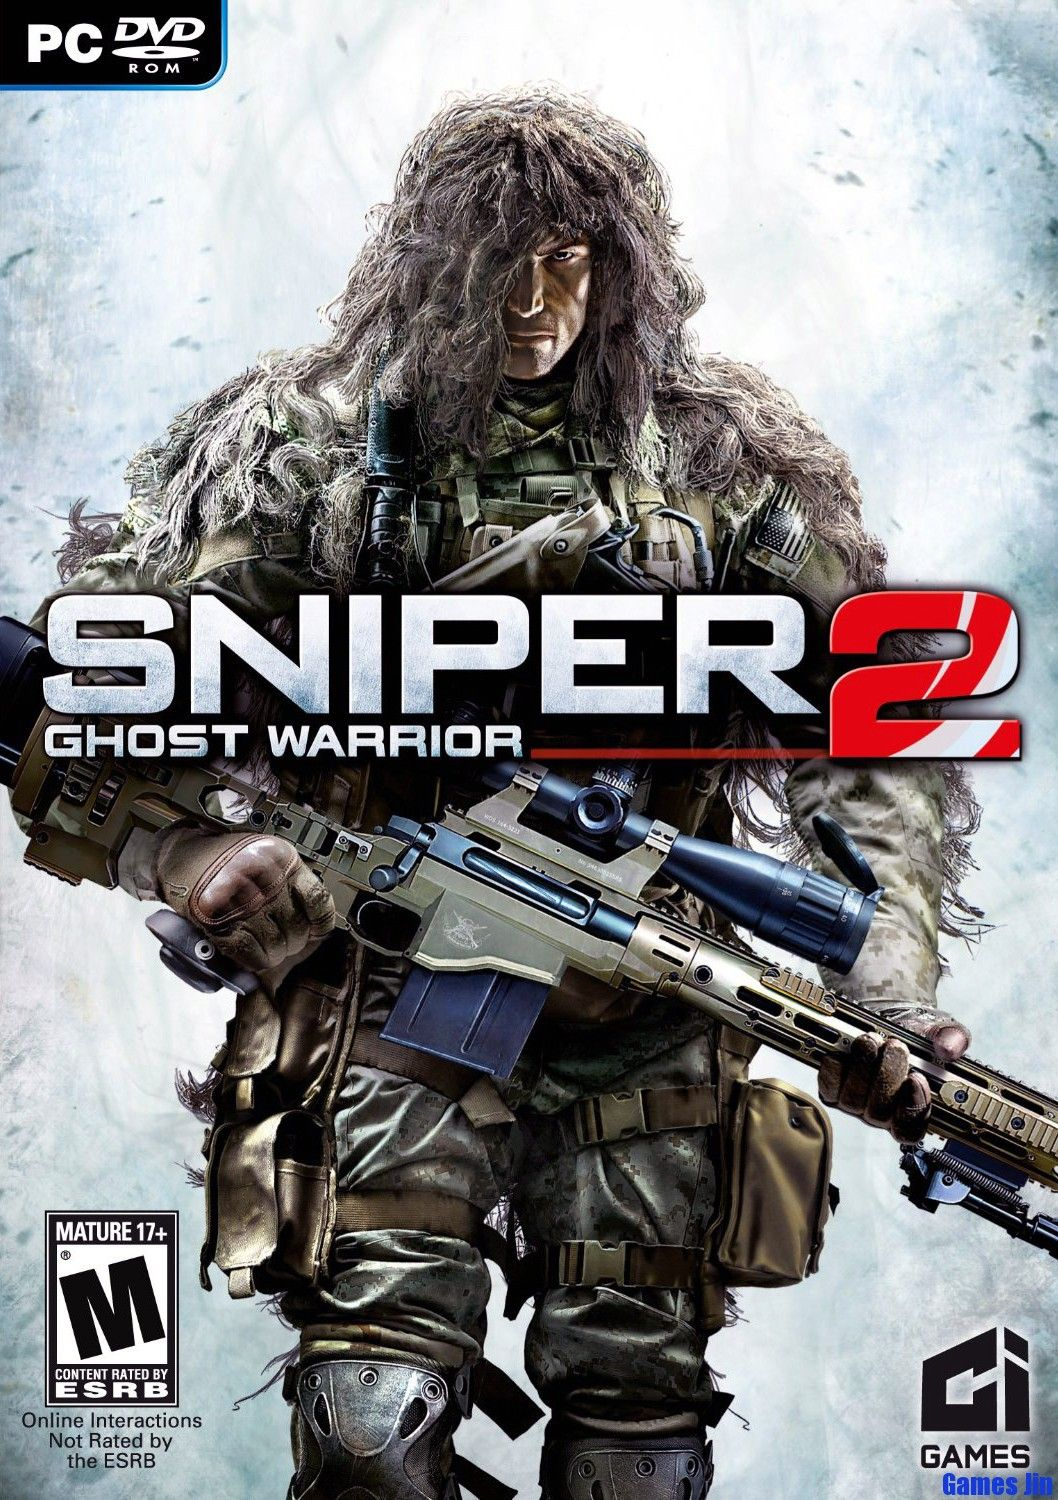 action games free download full version for pc windows 7